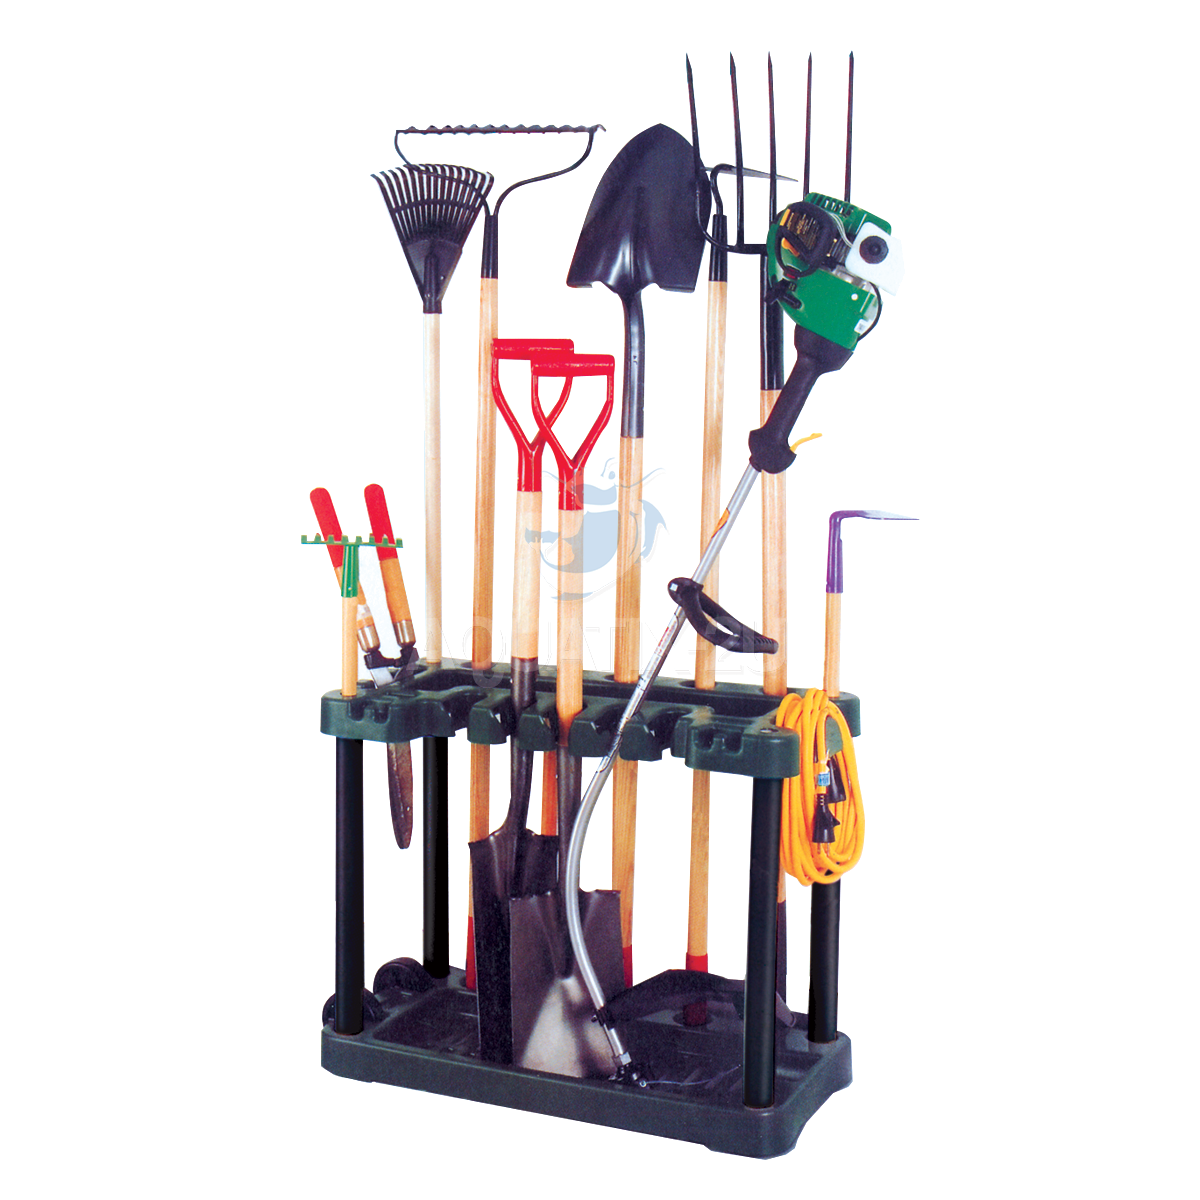 Garden tool rack trolley with wheels pisces for Garden tools equipment